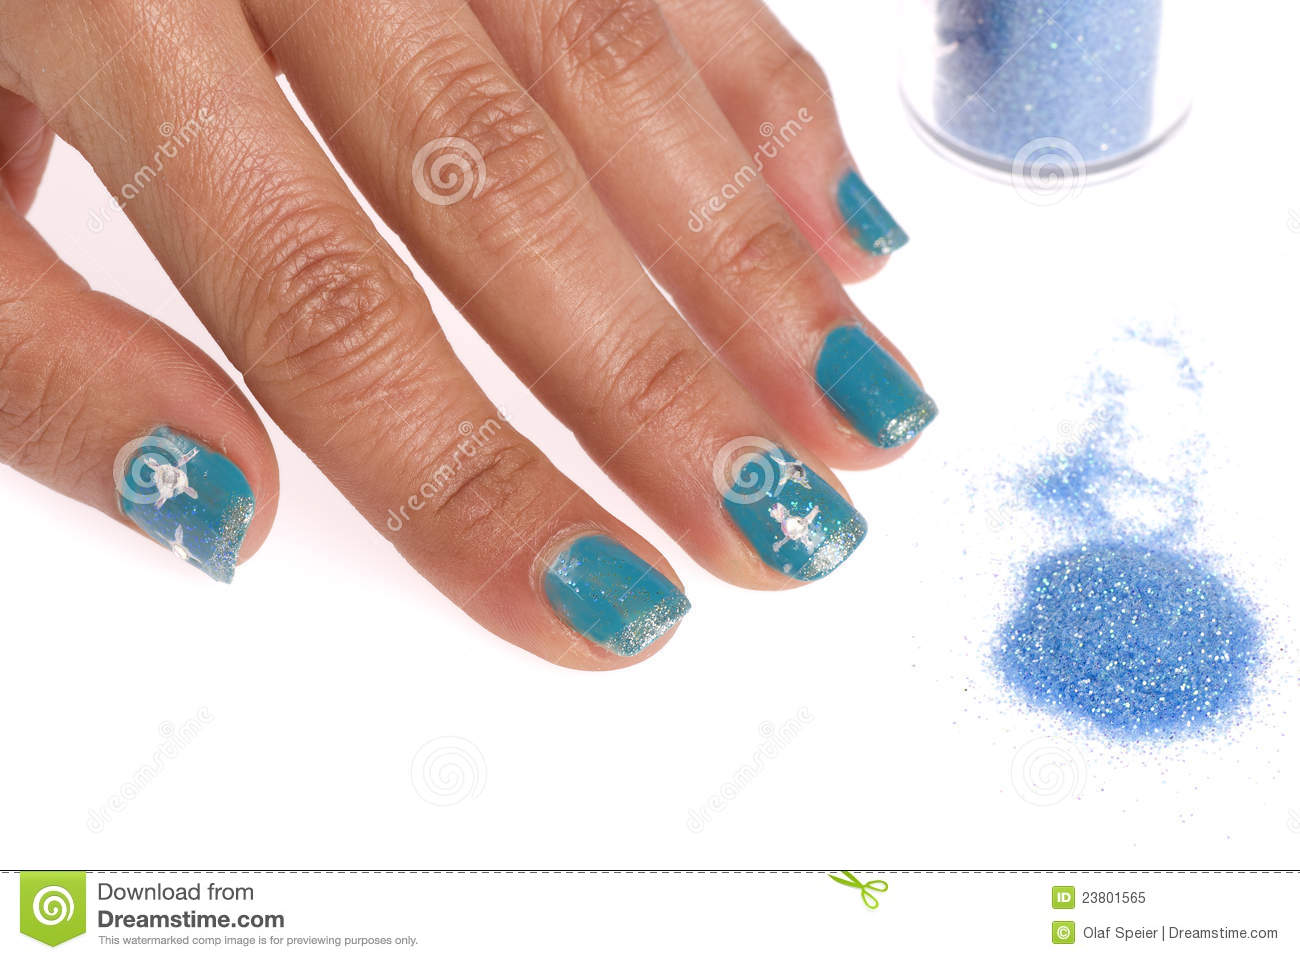 Decorated nails stock image. Image of shiny, care, nails ...